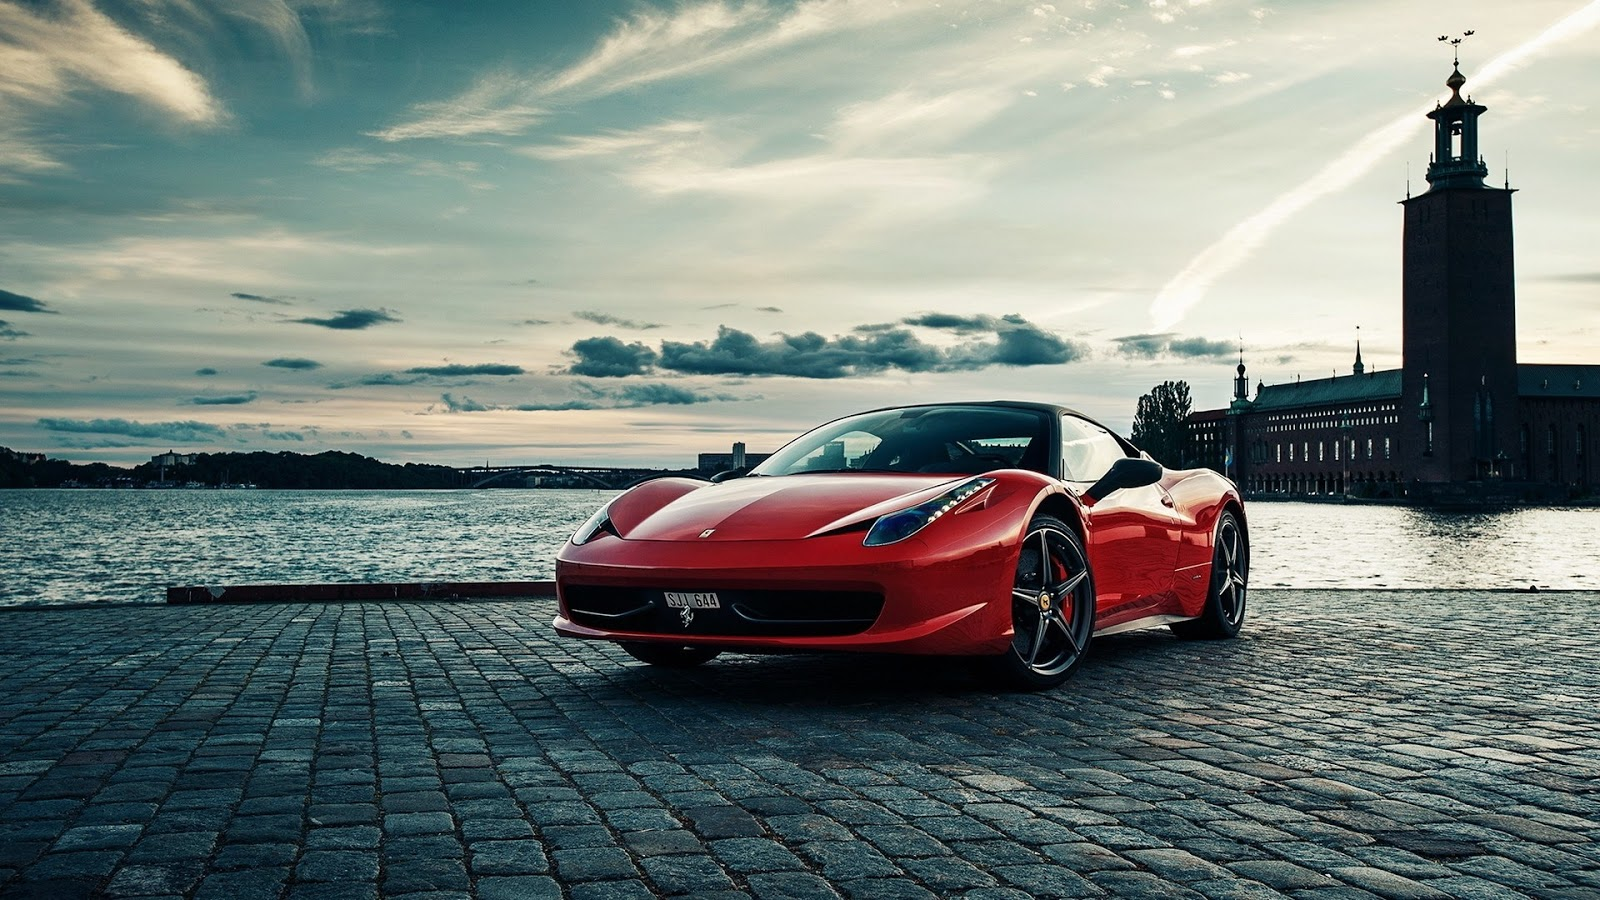 50 Super Sports Car Wallpapers Thatll Blow Your Desktop Away 1600x900